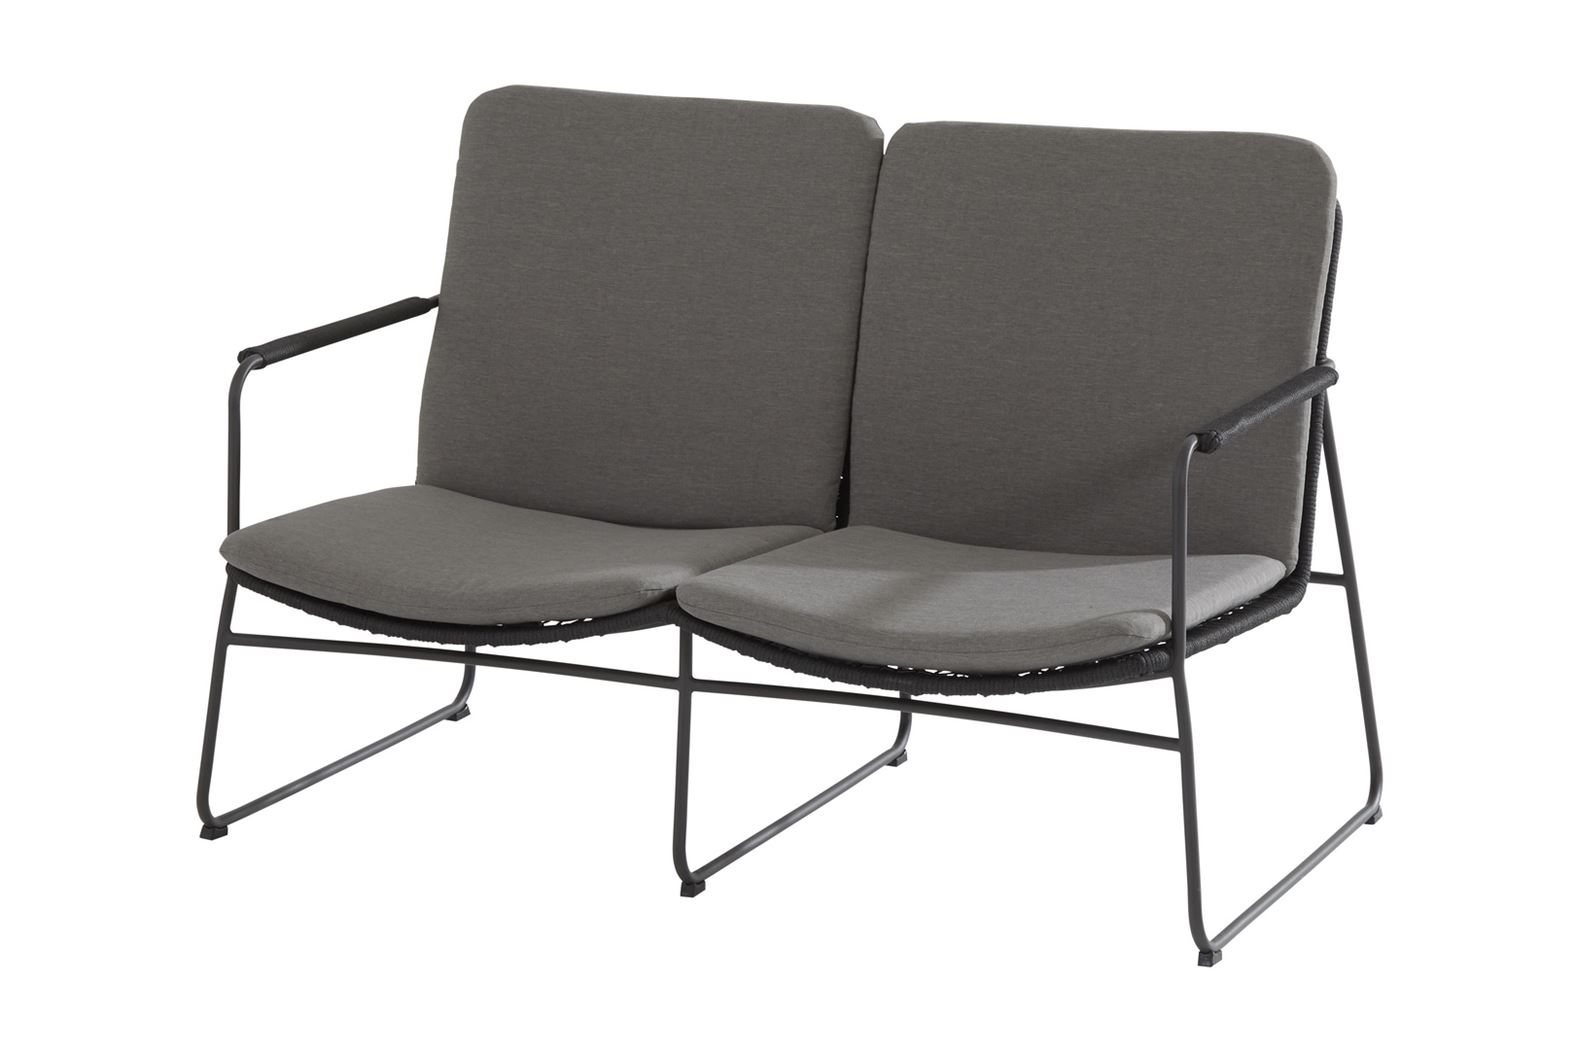 4so elba living bench 2 seater with seat and back cushions anthracite